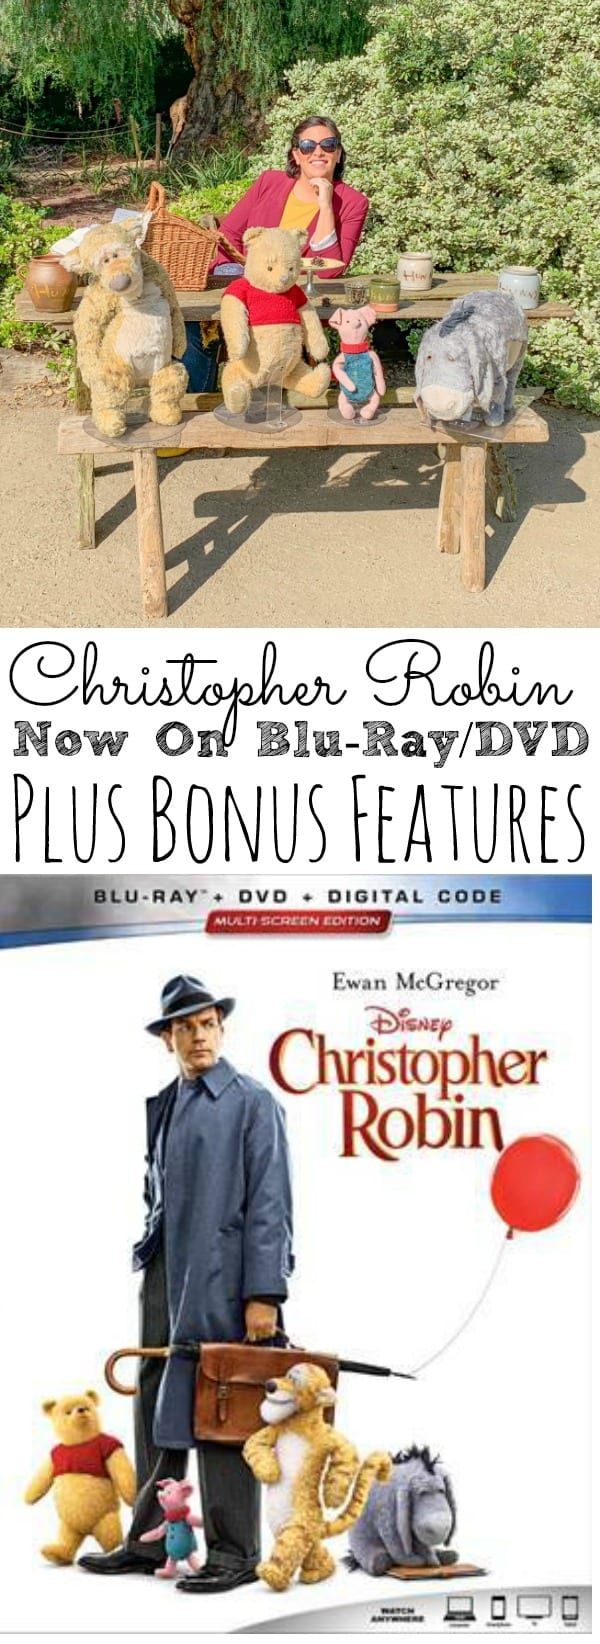 Christopher Robin On Blu-ray and Bonus Features